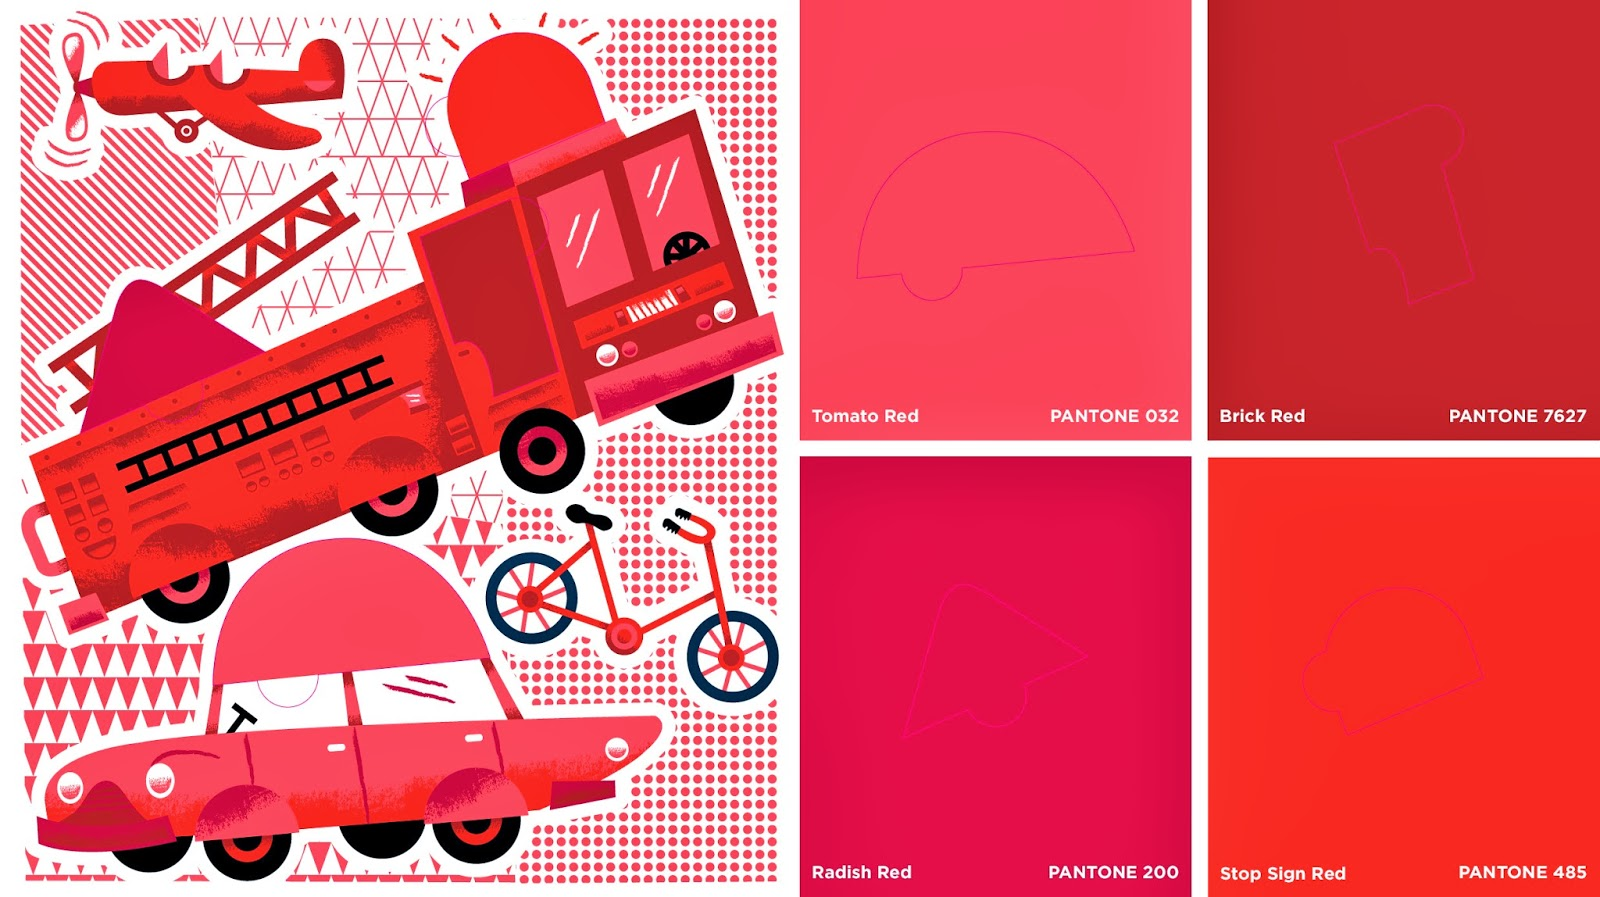 Pantone Color Puzzles by Pantone and AbramsAppleseed, art by Tad